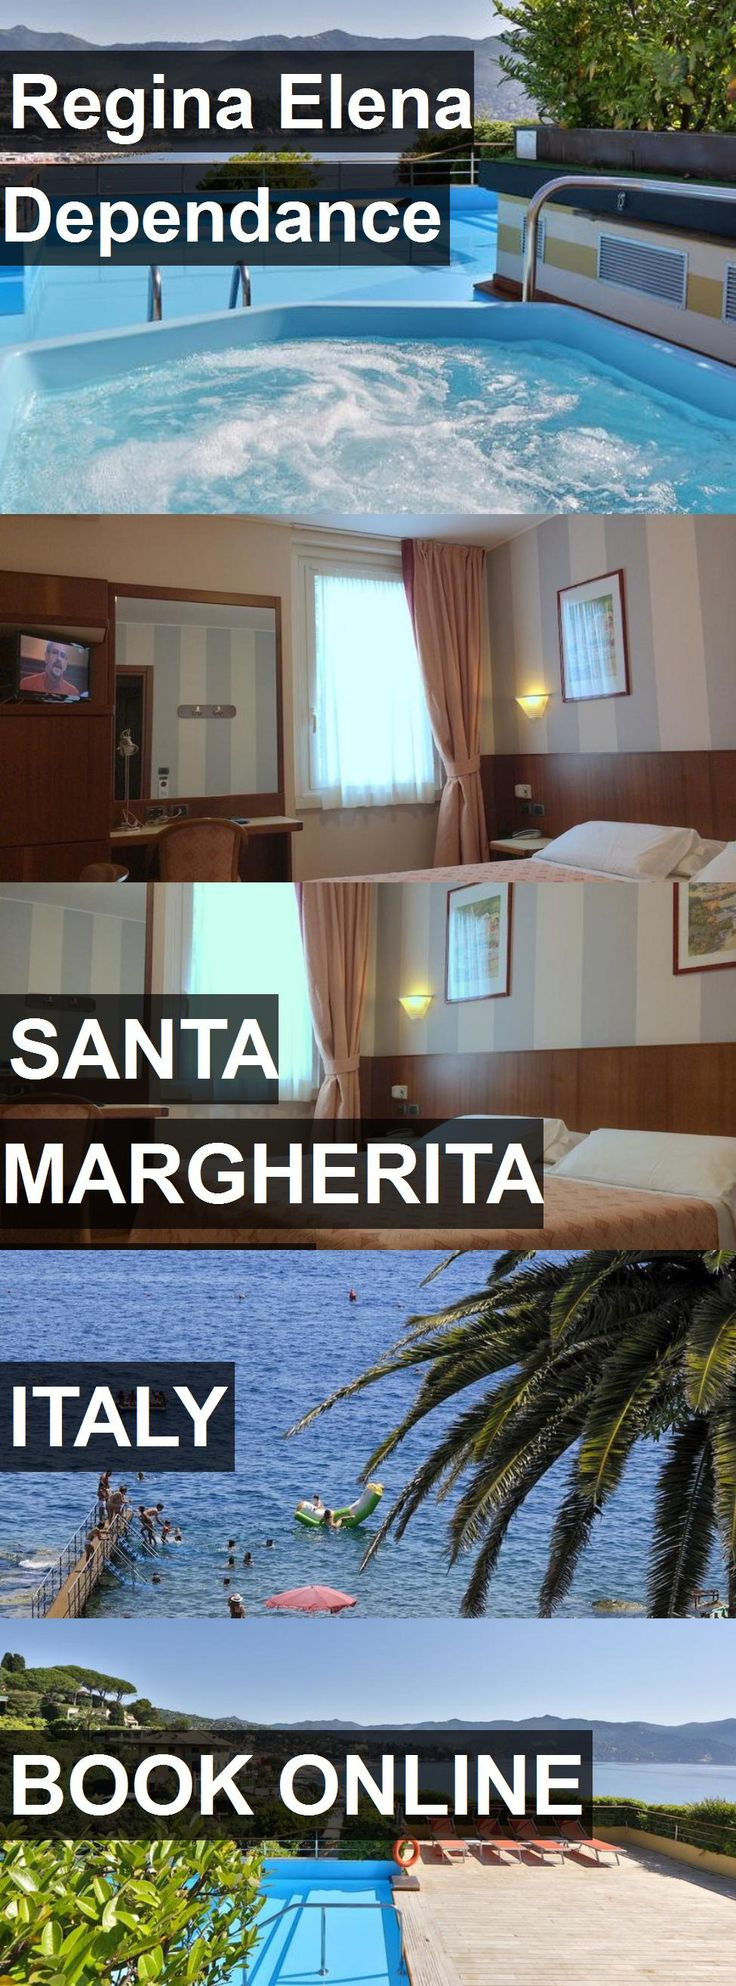 Hotel Regina Elena Dependance in Santa Margherita Ligure, Italy. For more information, photos, reviews and best prices please follow the link. #Italy #SantaMargheritaLigure #travel #vacation #hotel